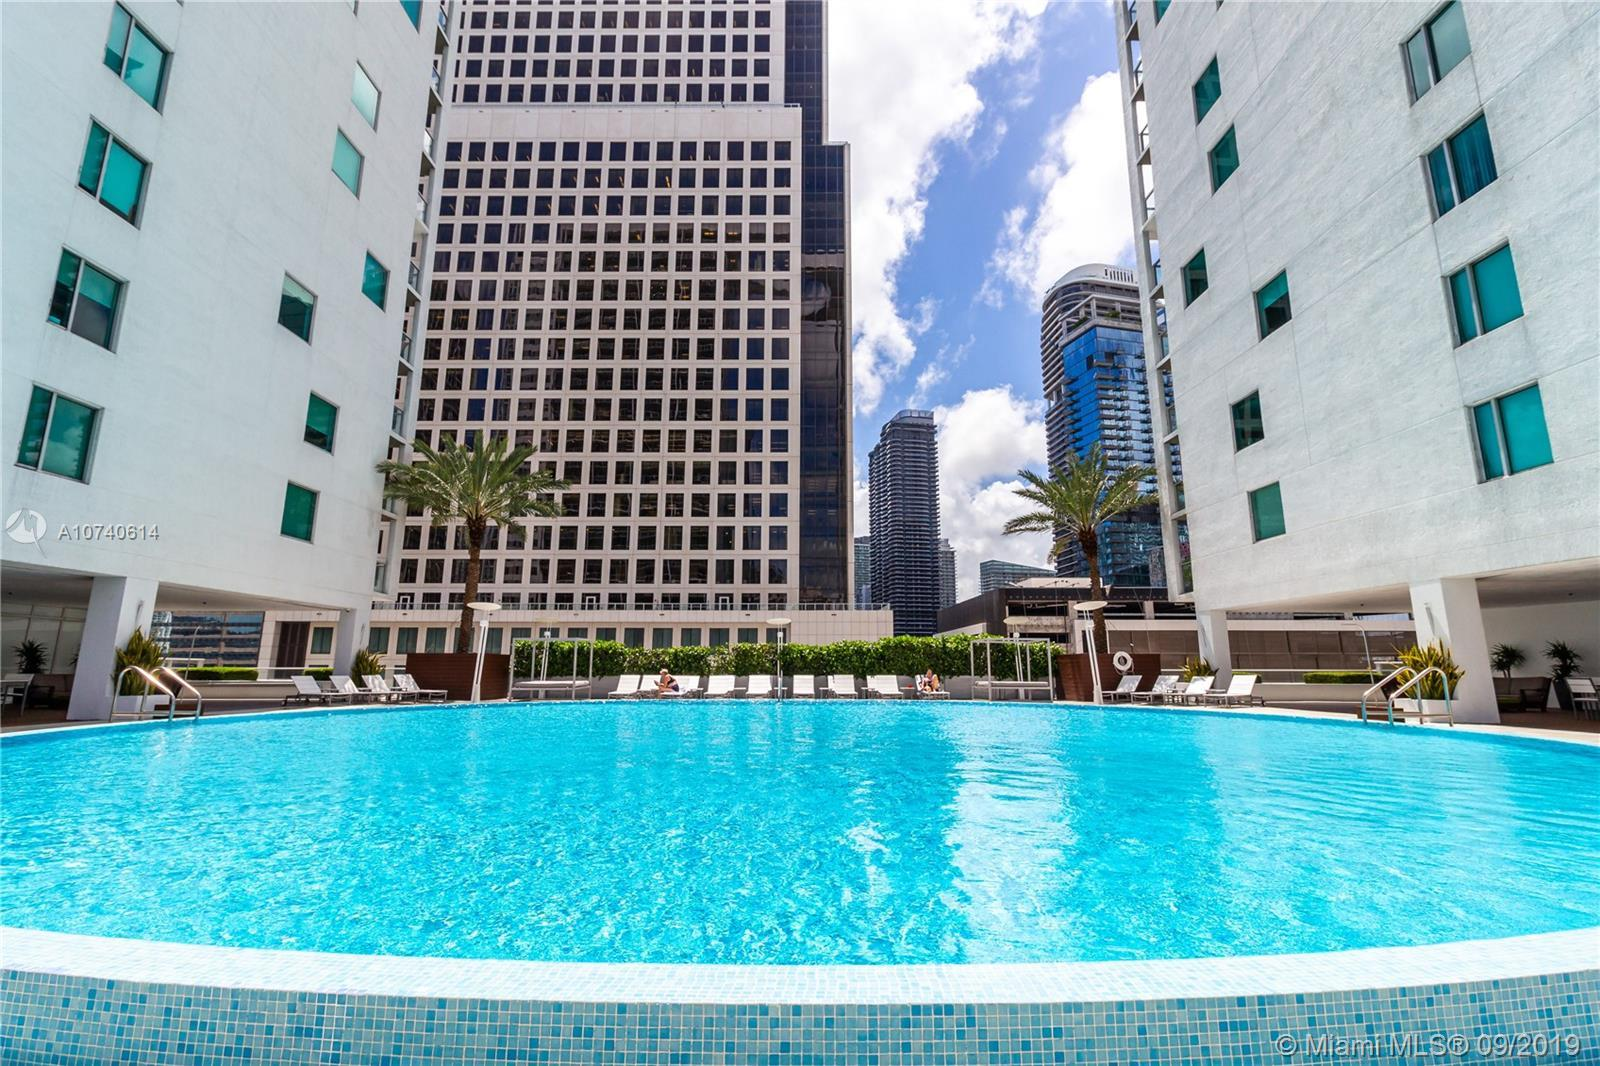 500 Brickell Ave Unit: 1705 preview